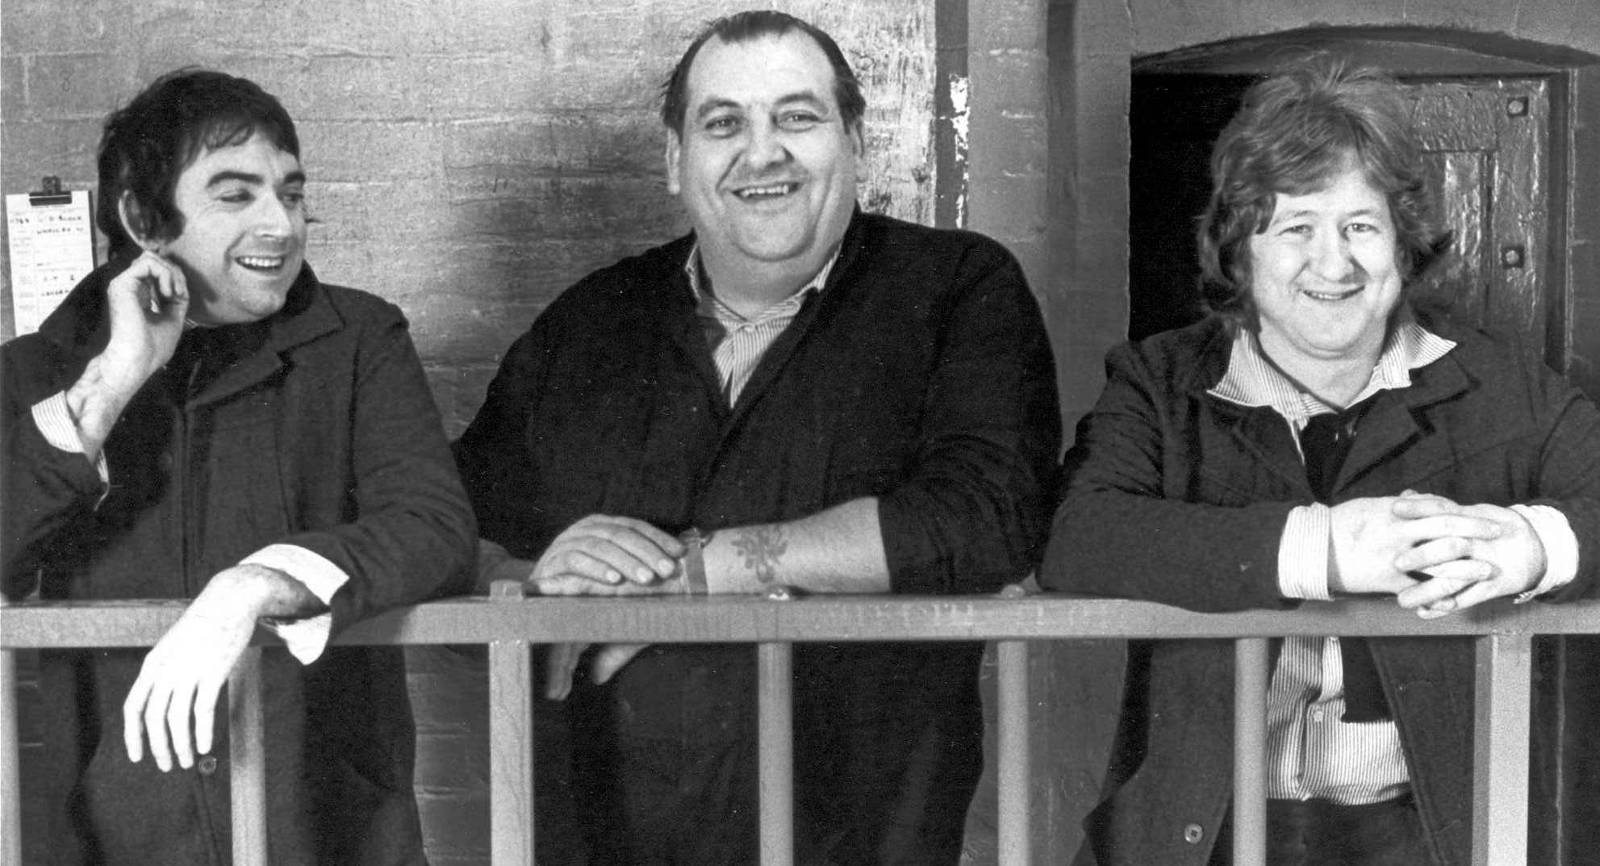 John Dair and friends on the set of the Porridge movie